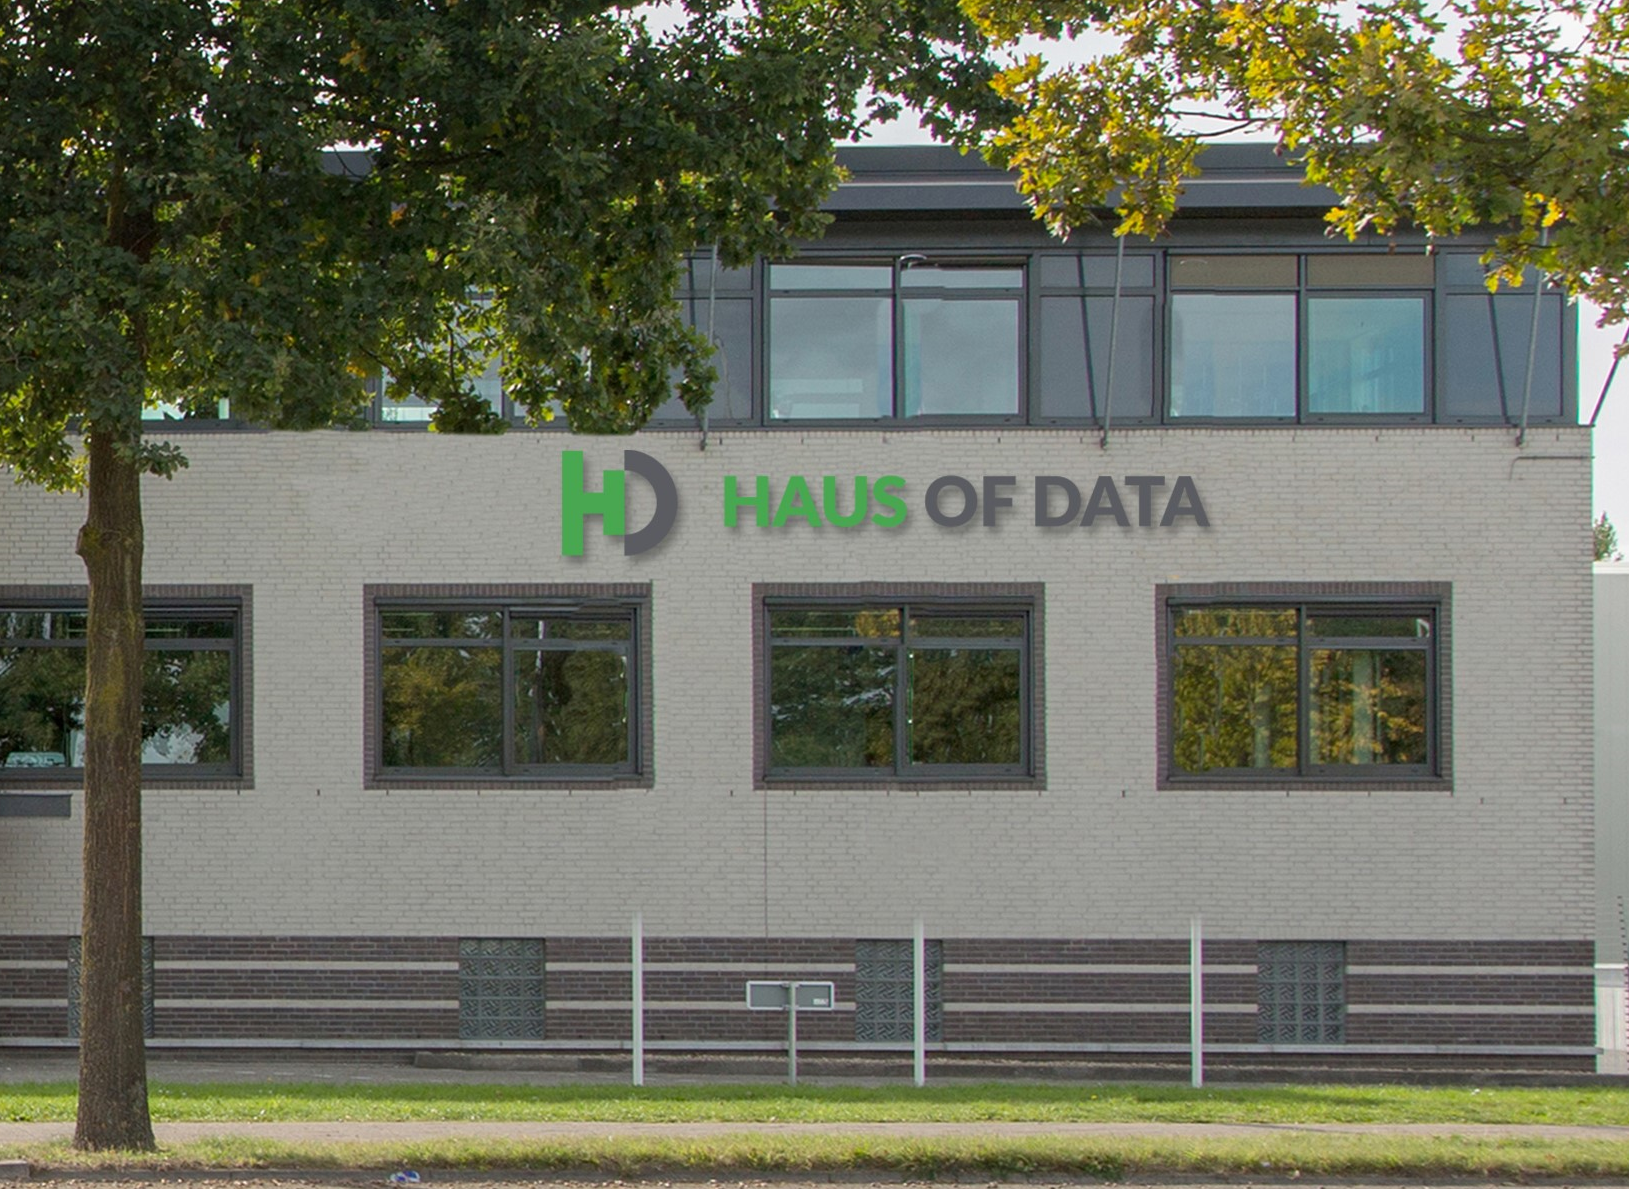 HAUS of DATA